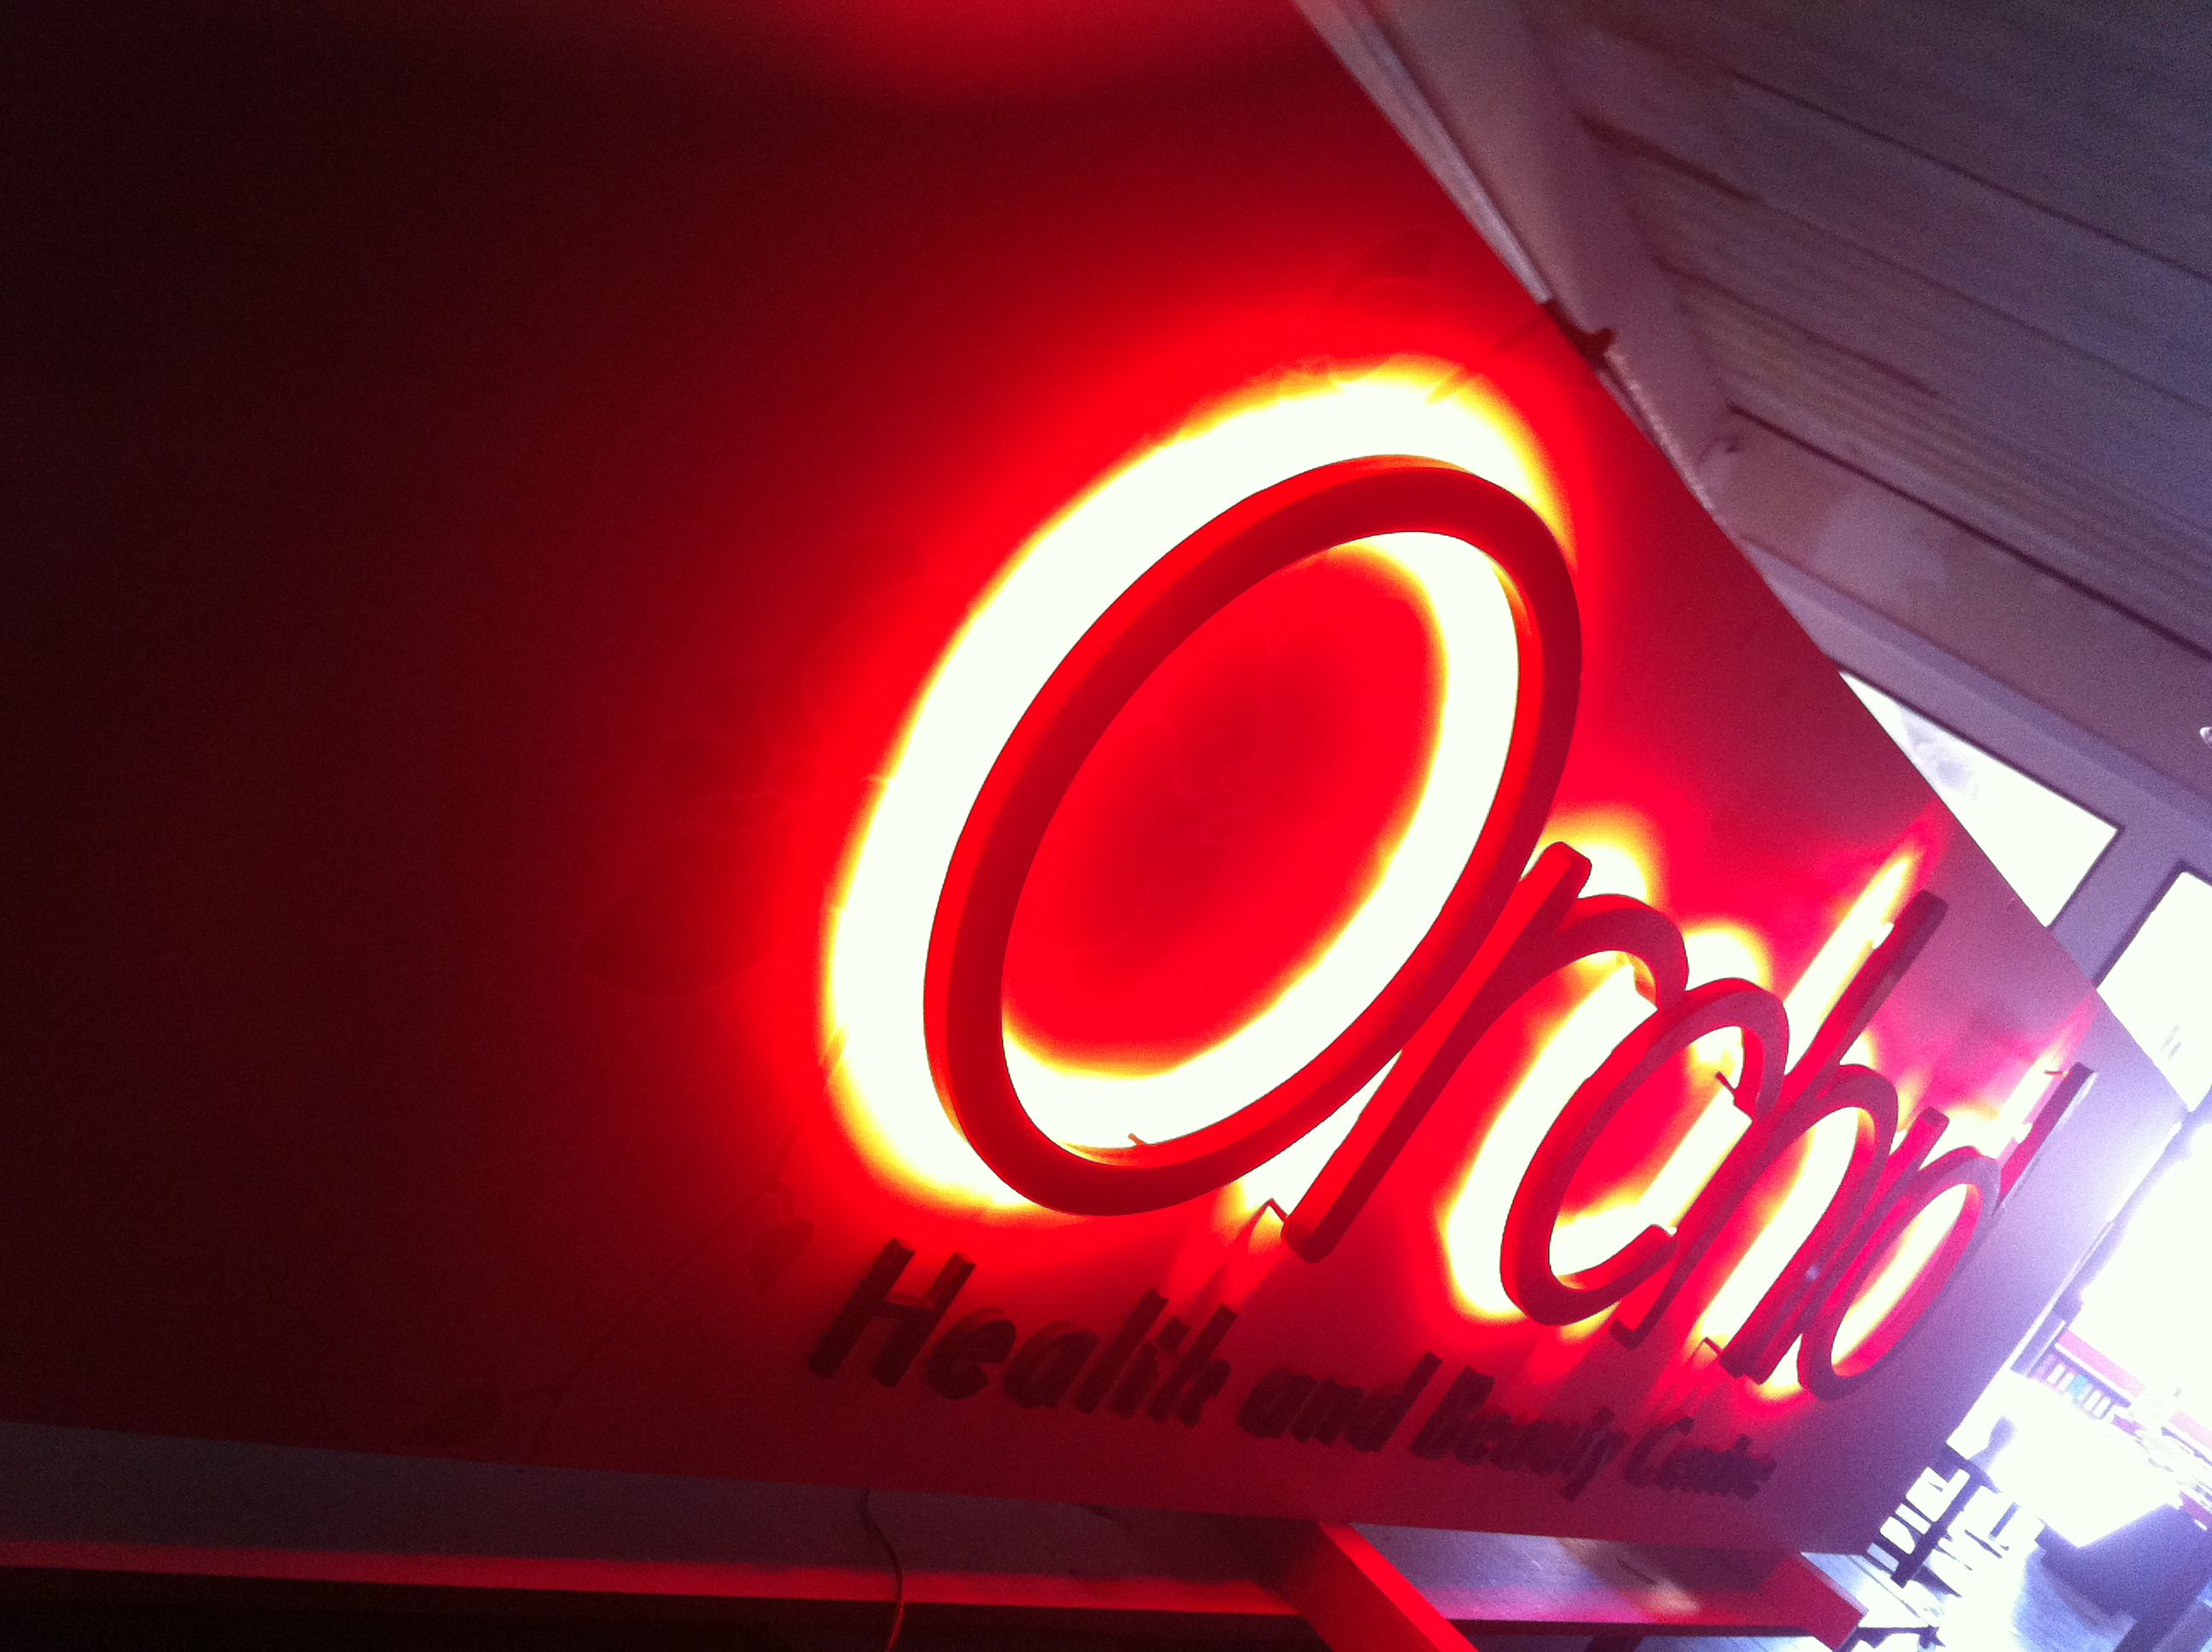 Orchid led sign